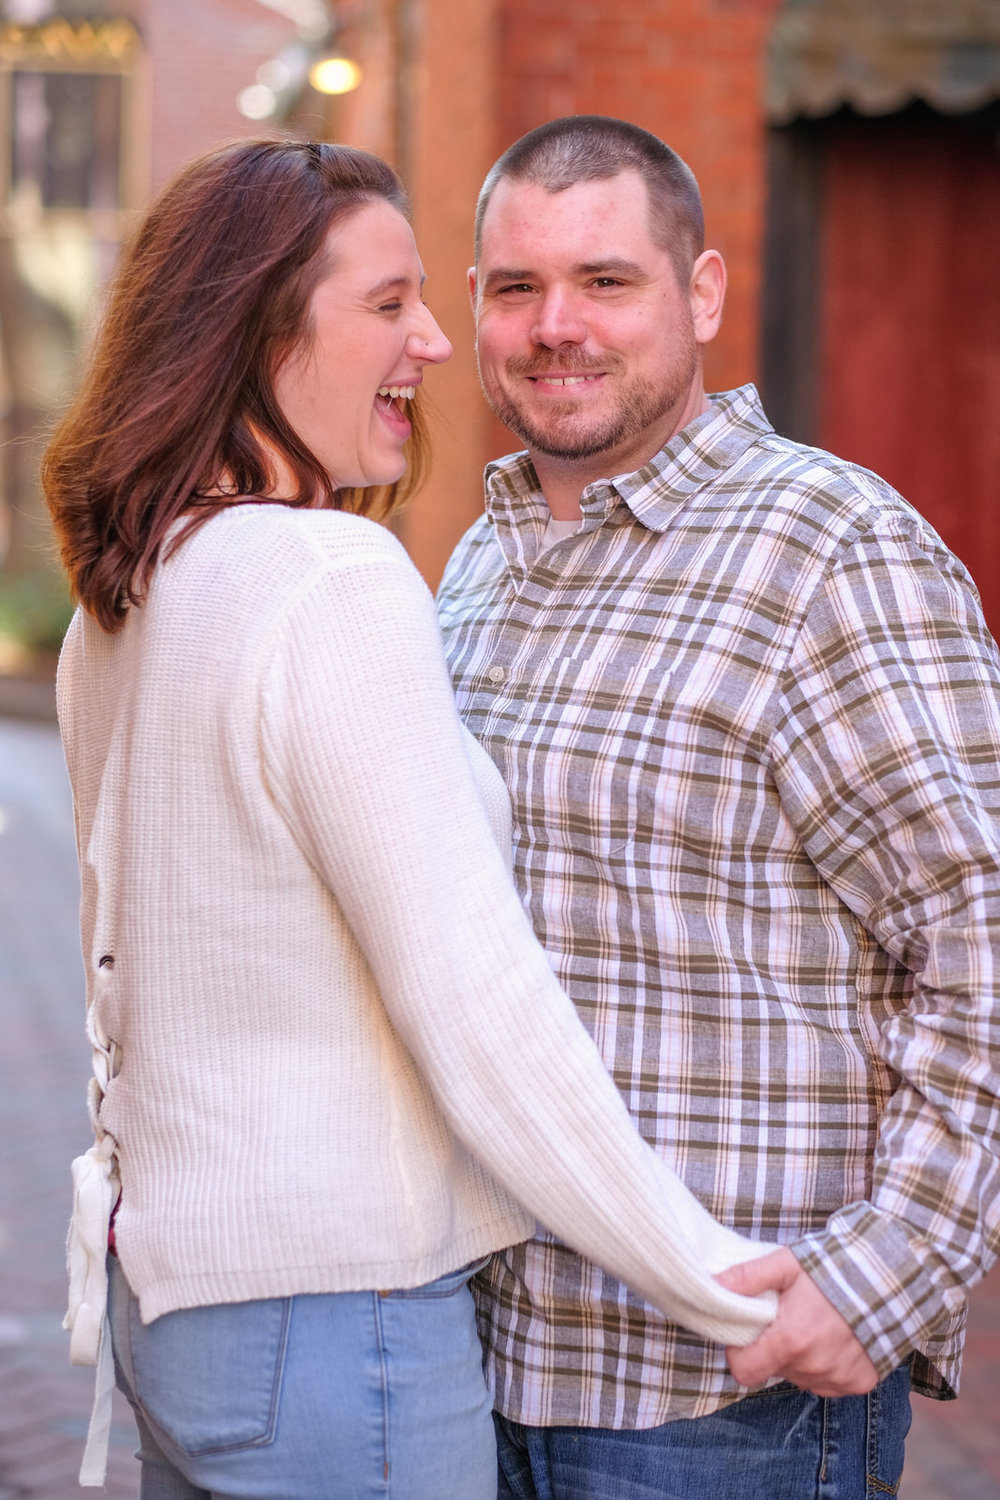 candid-portsmouth-nh-engagement-photography-38.jpg